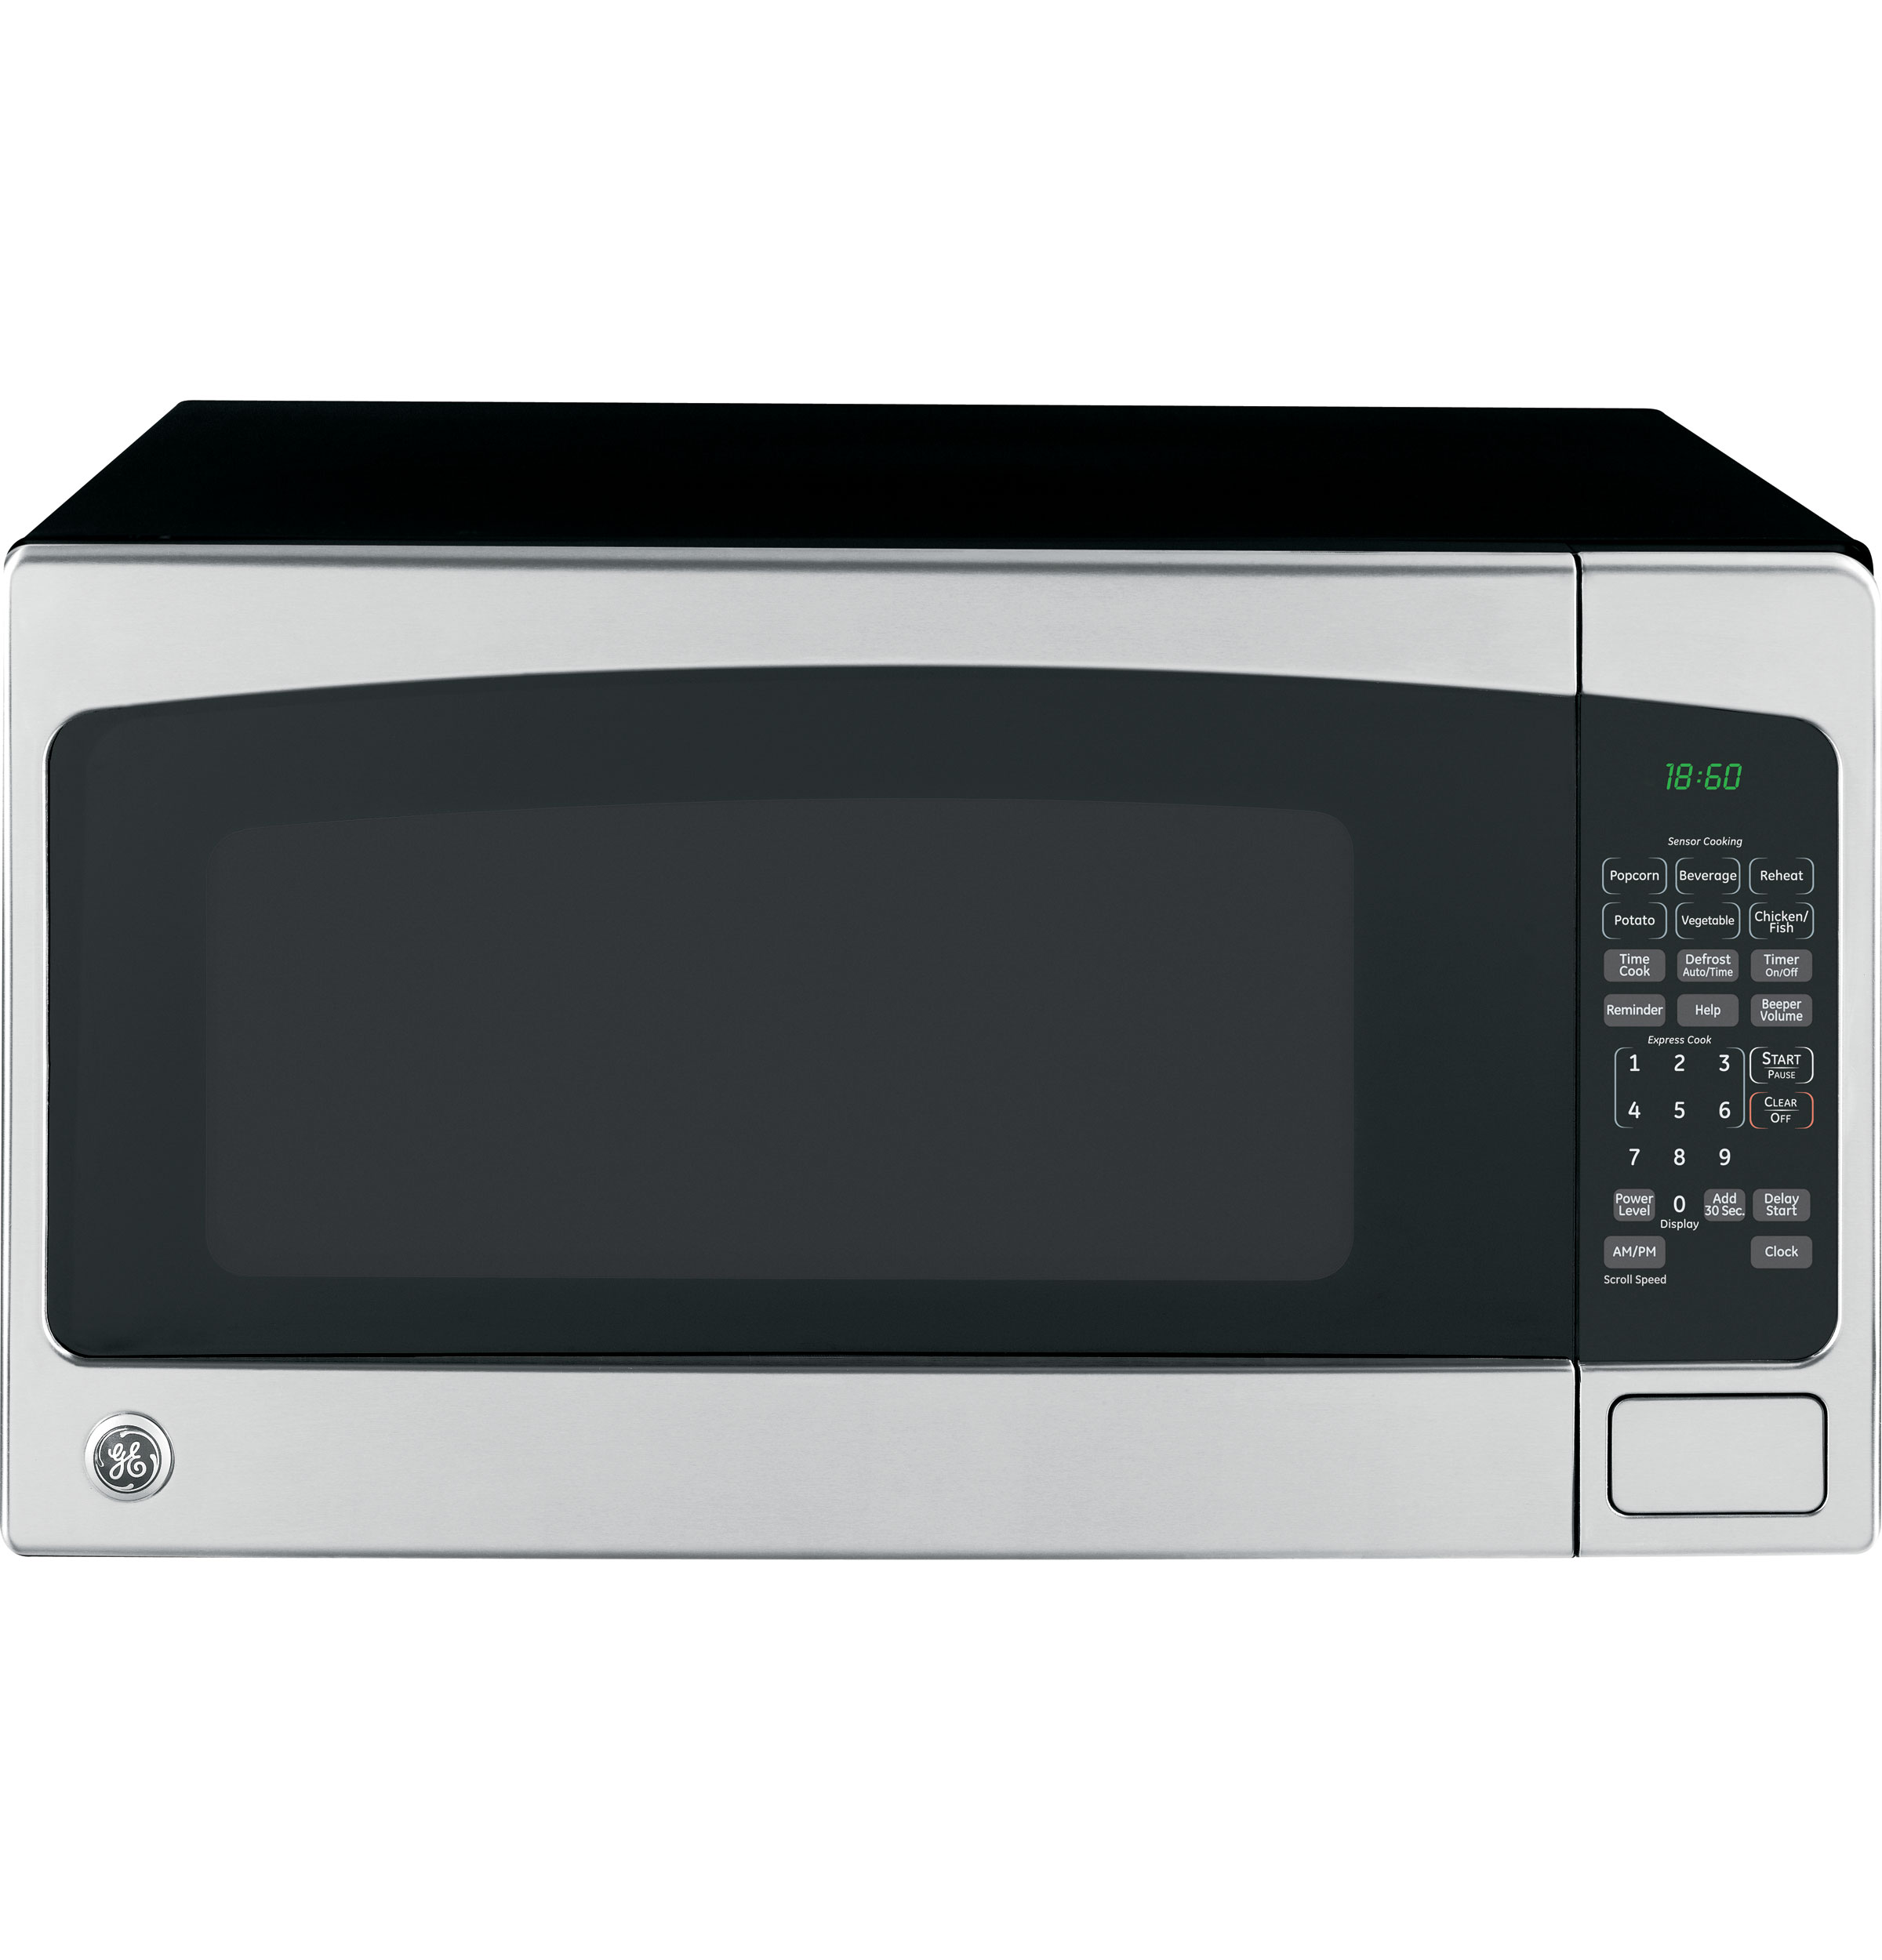 toaster mauritius oven shop online sale ref nt mu in kitchen product galaxy on panasonic